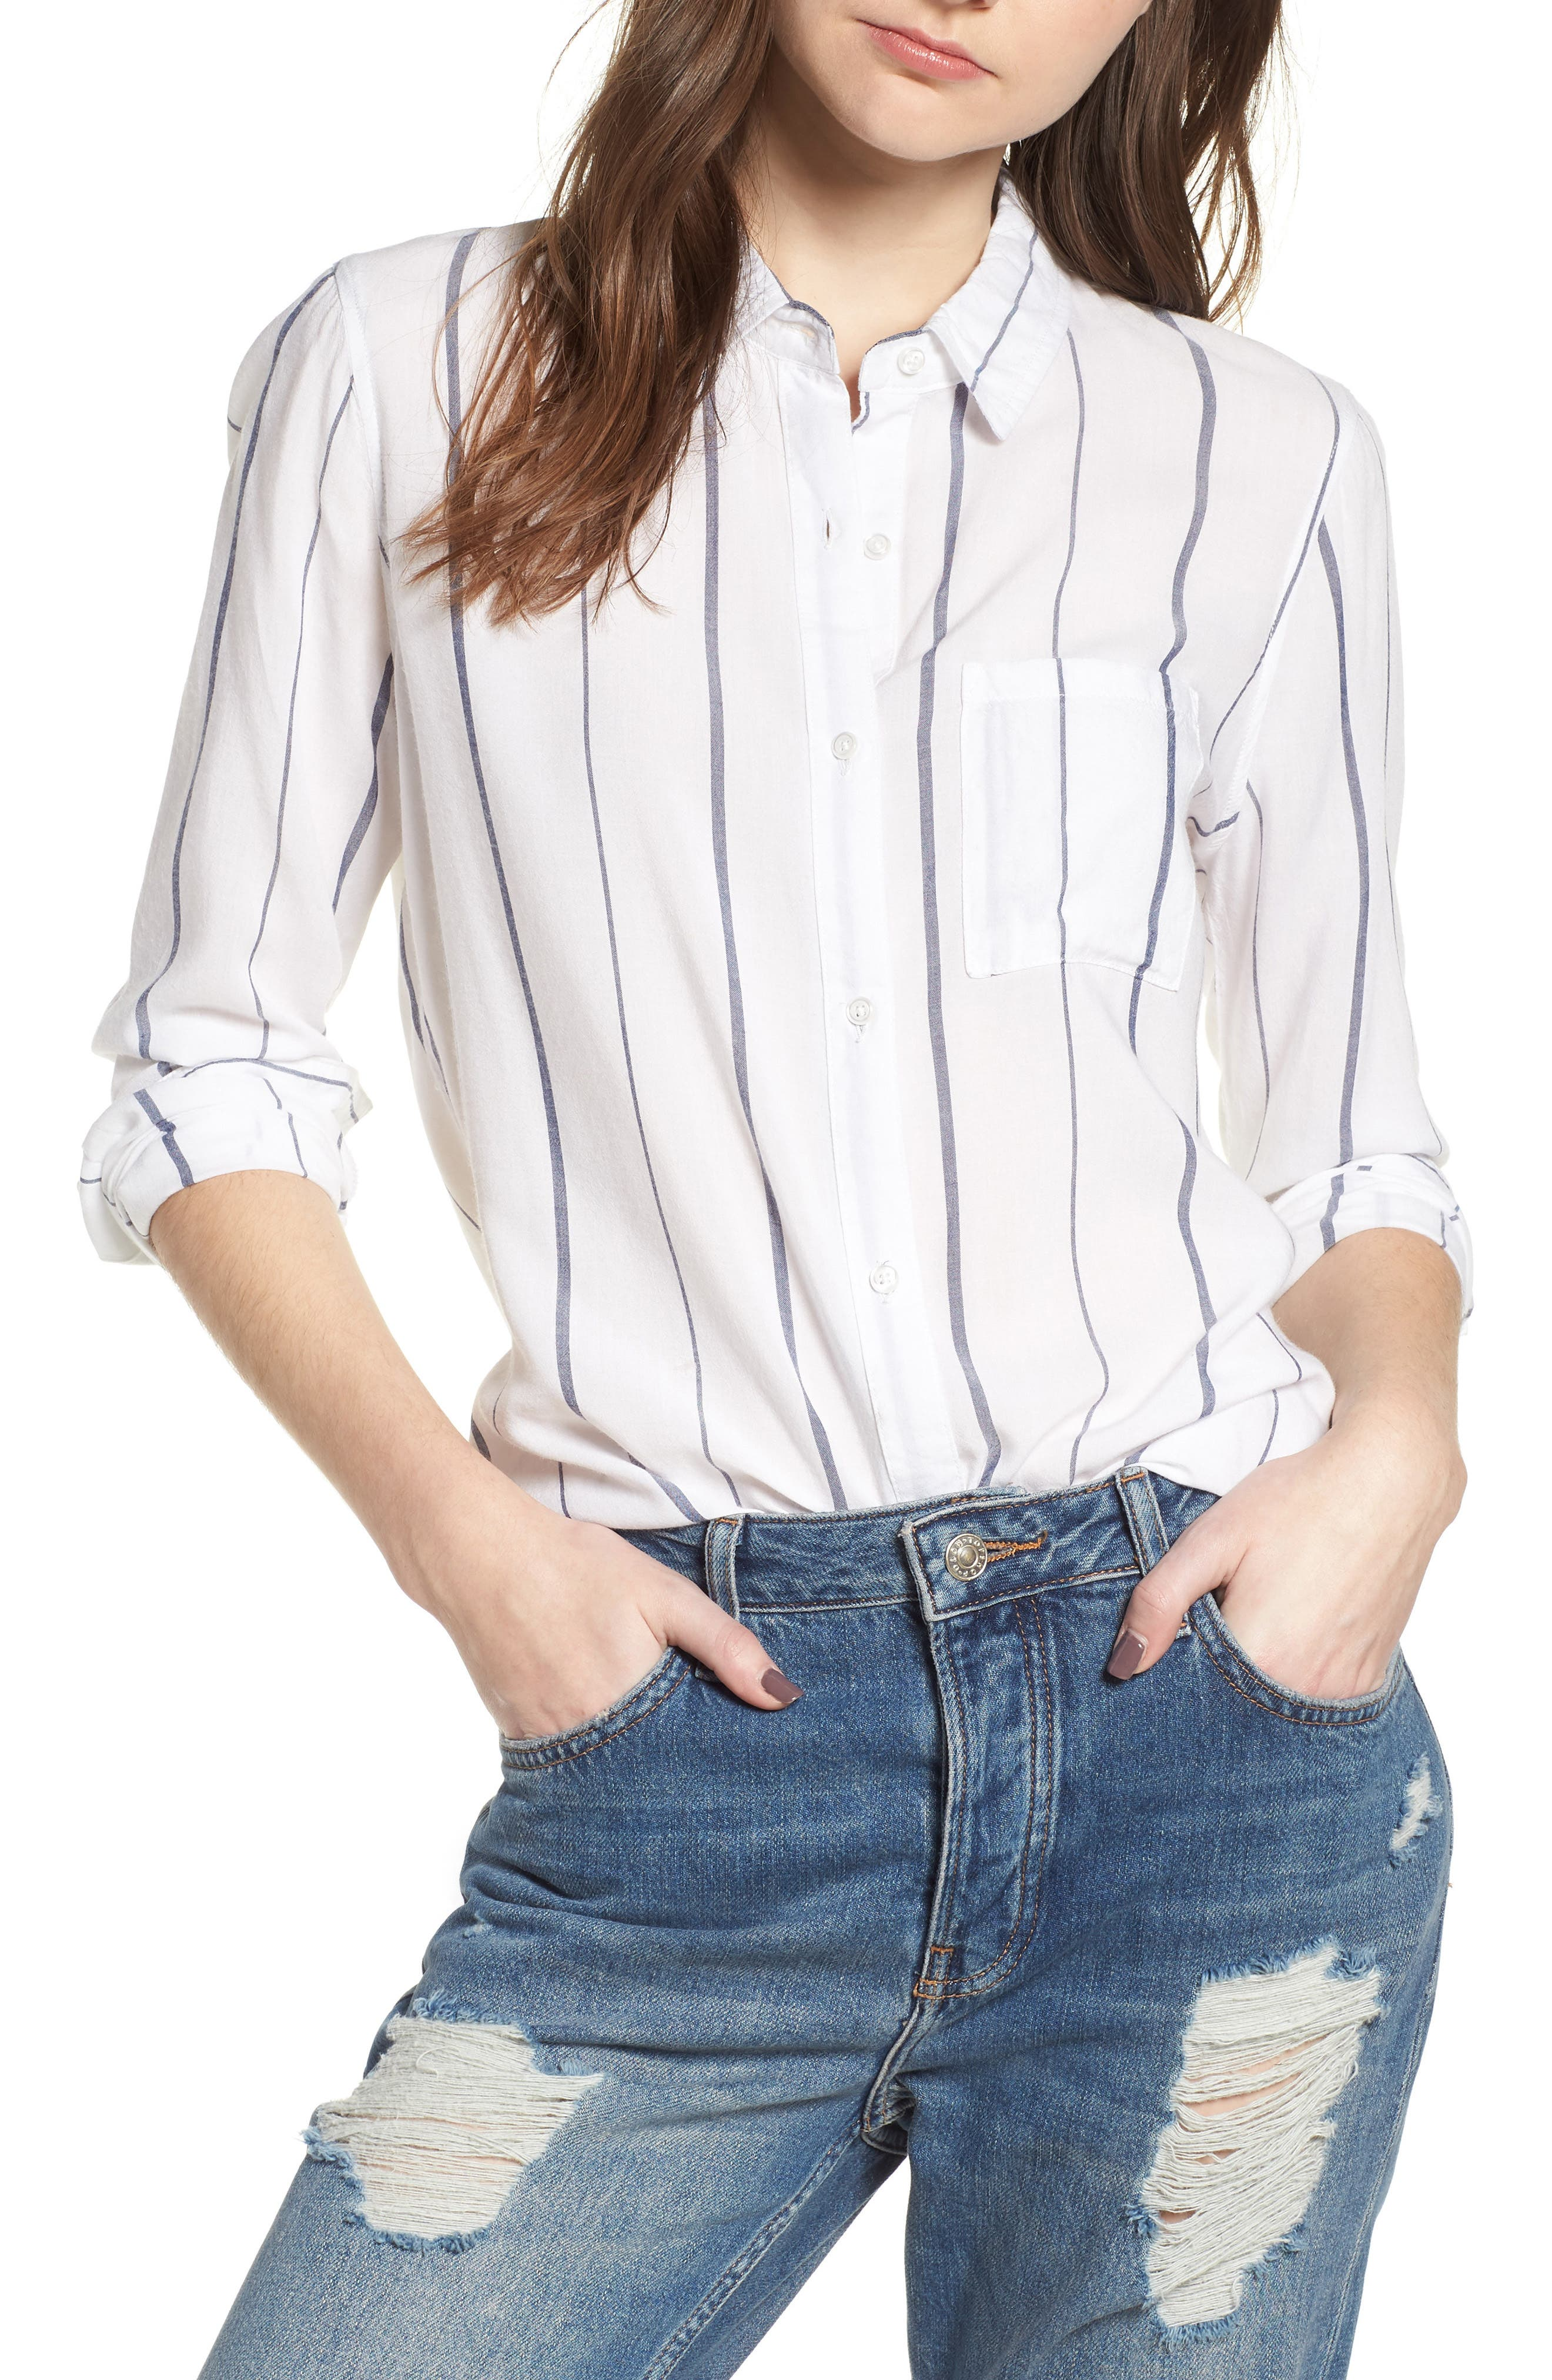 Canyons Stripe Shirt,                             Main thumbnail 1, color,                             White/ Navy Stripe